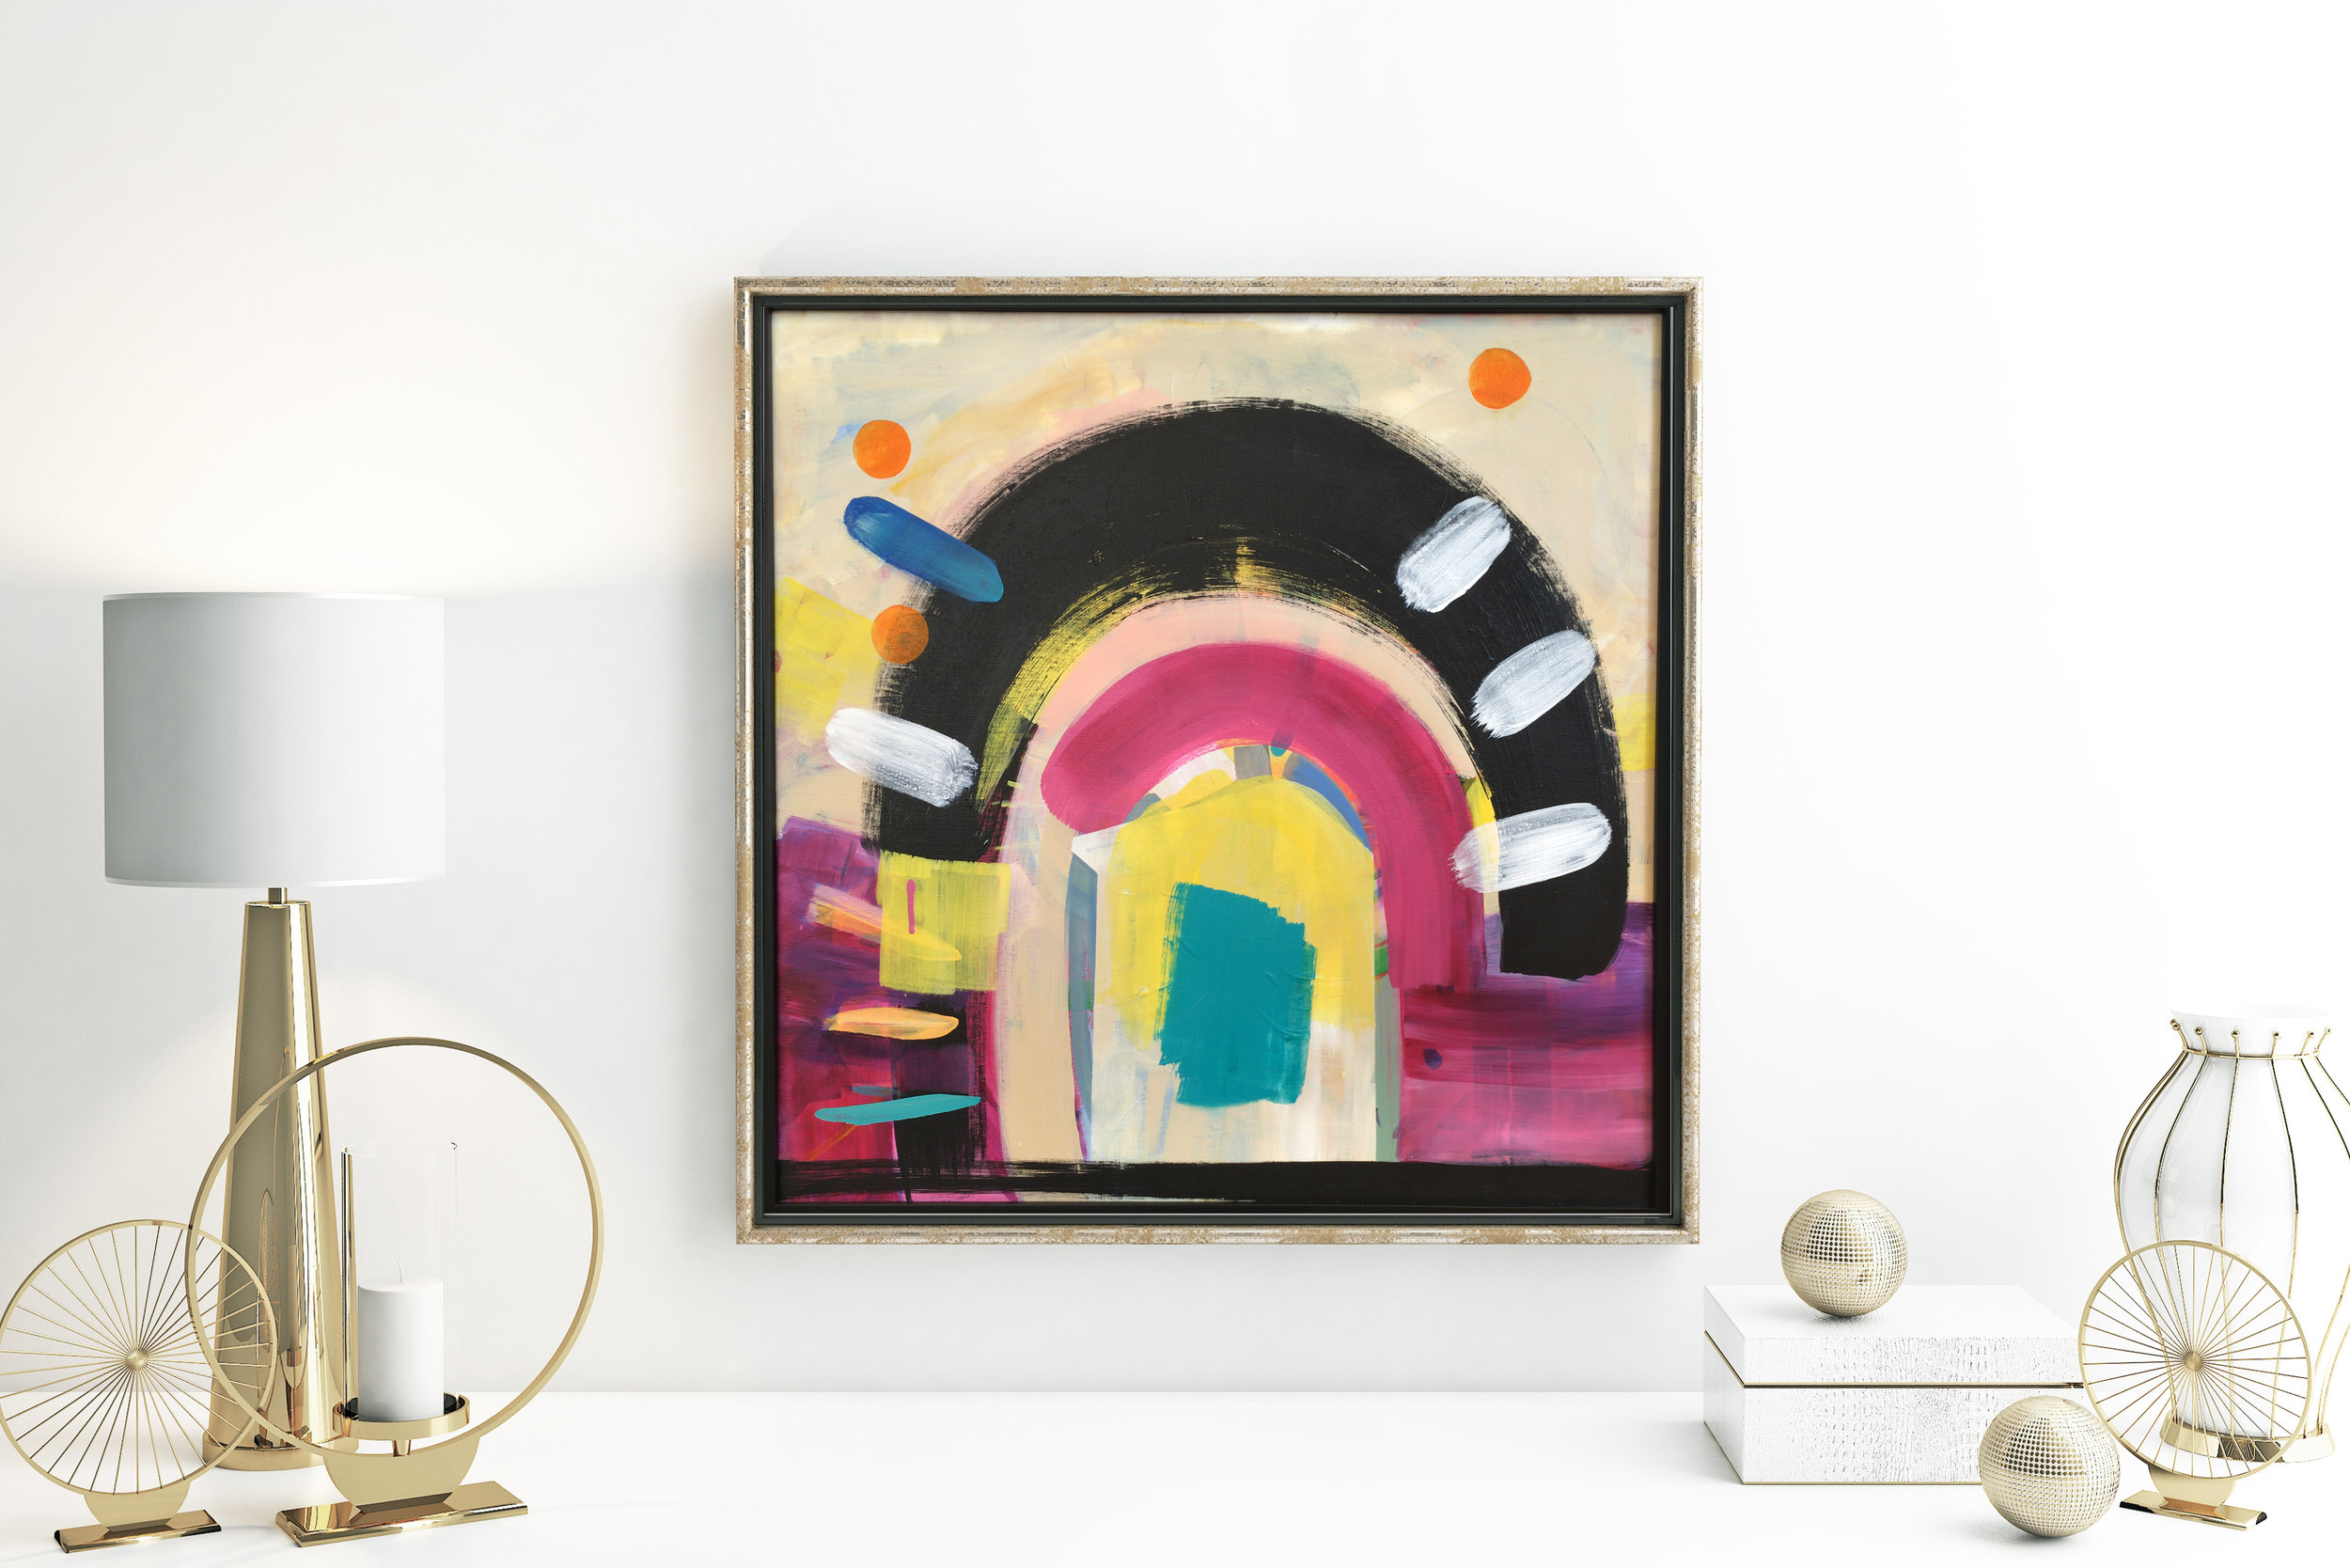 bold abstract art in frame